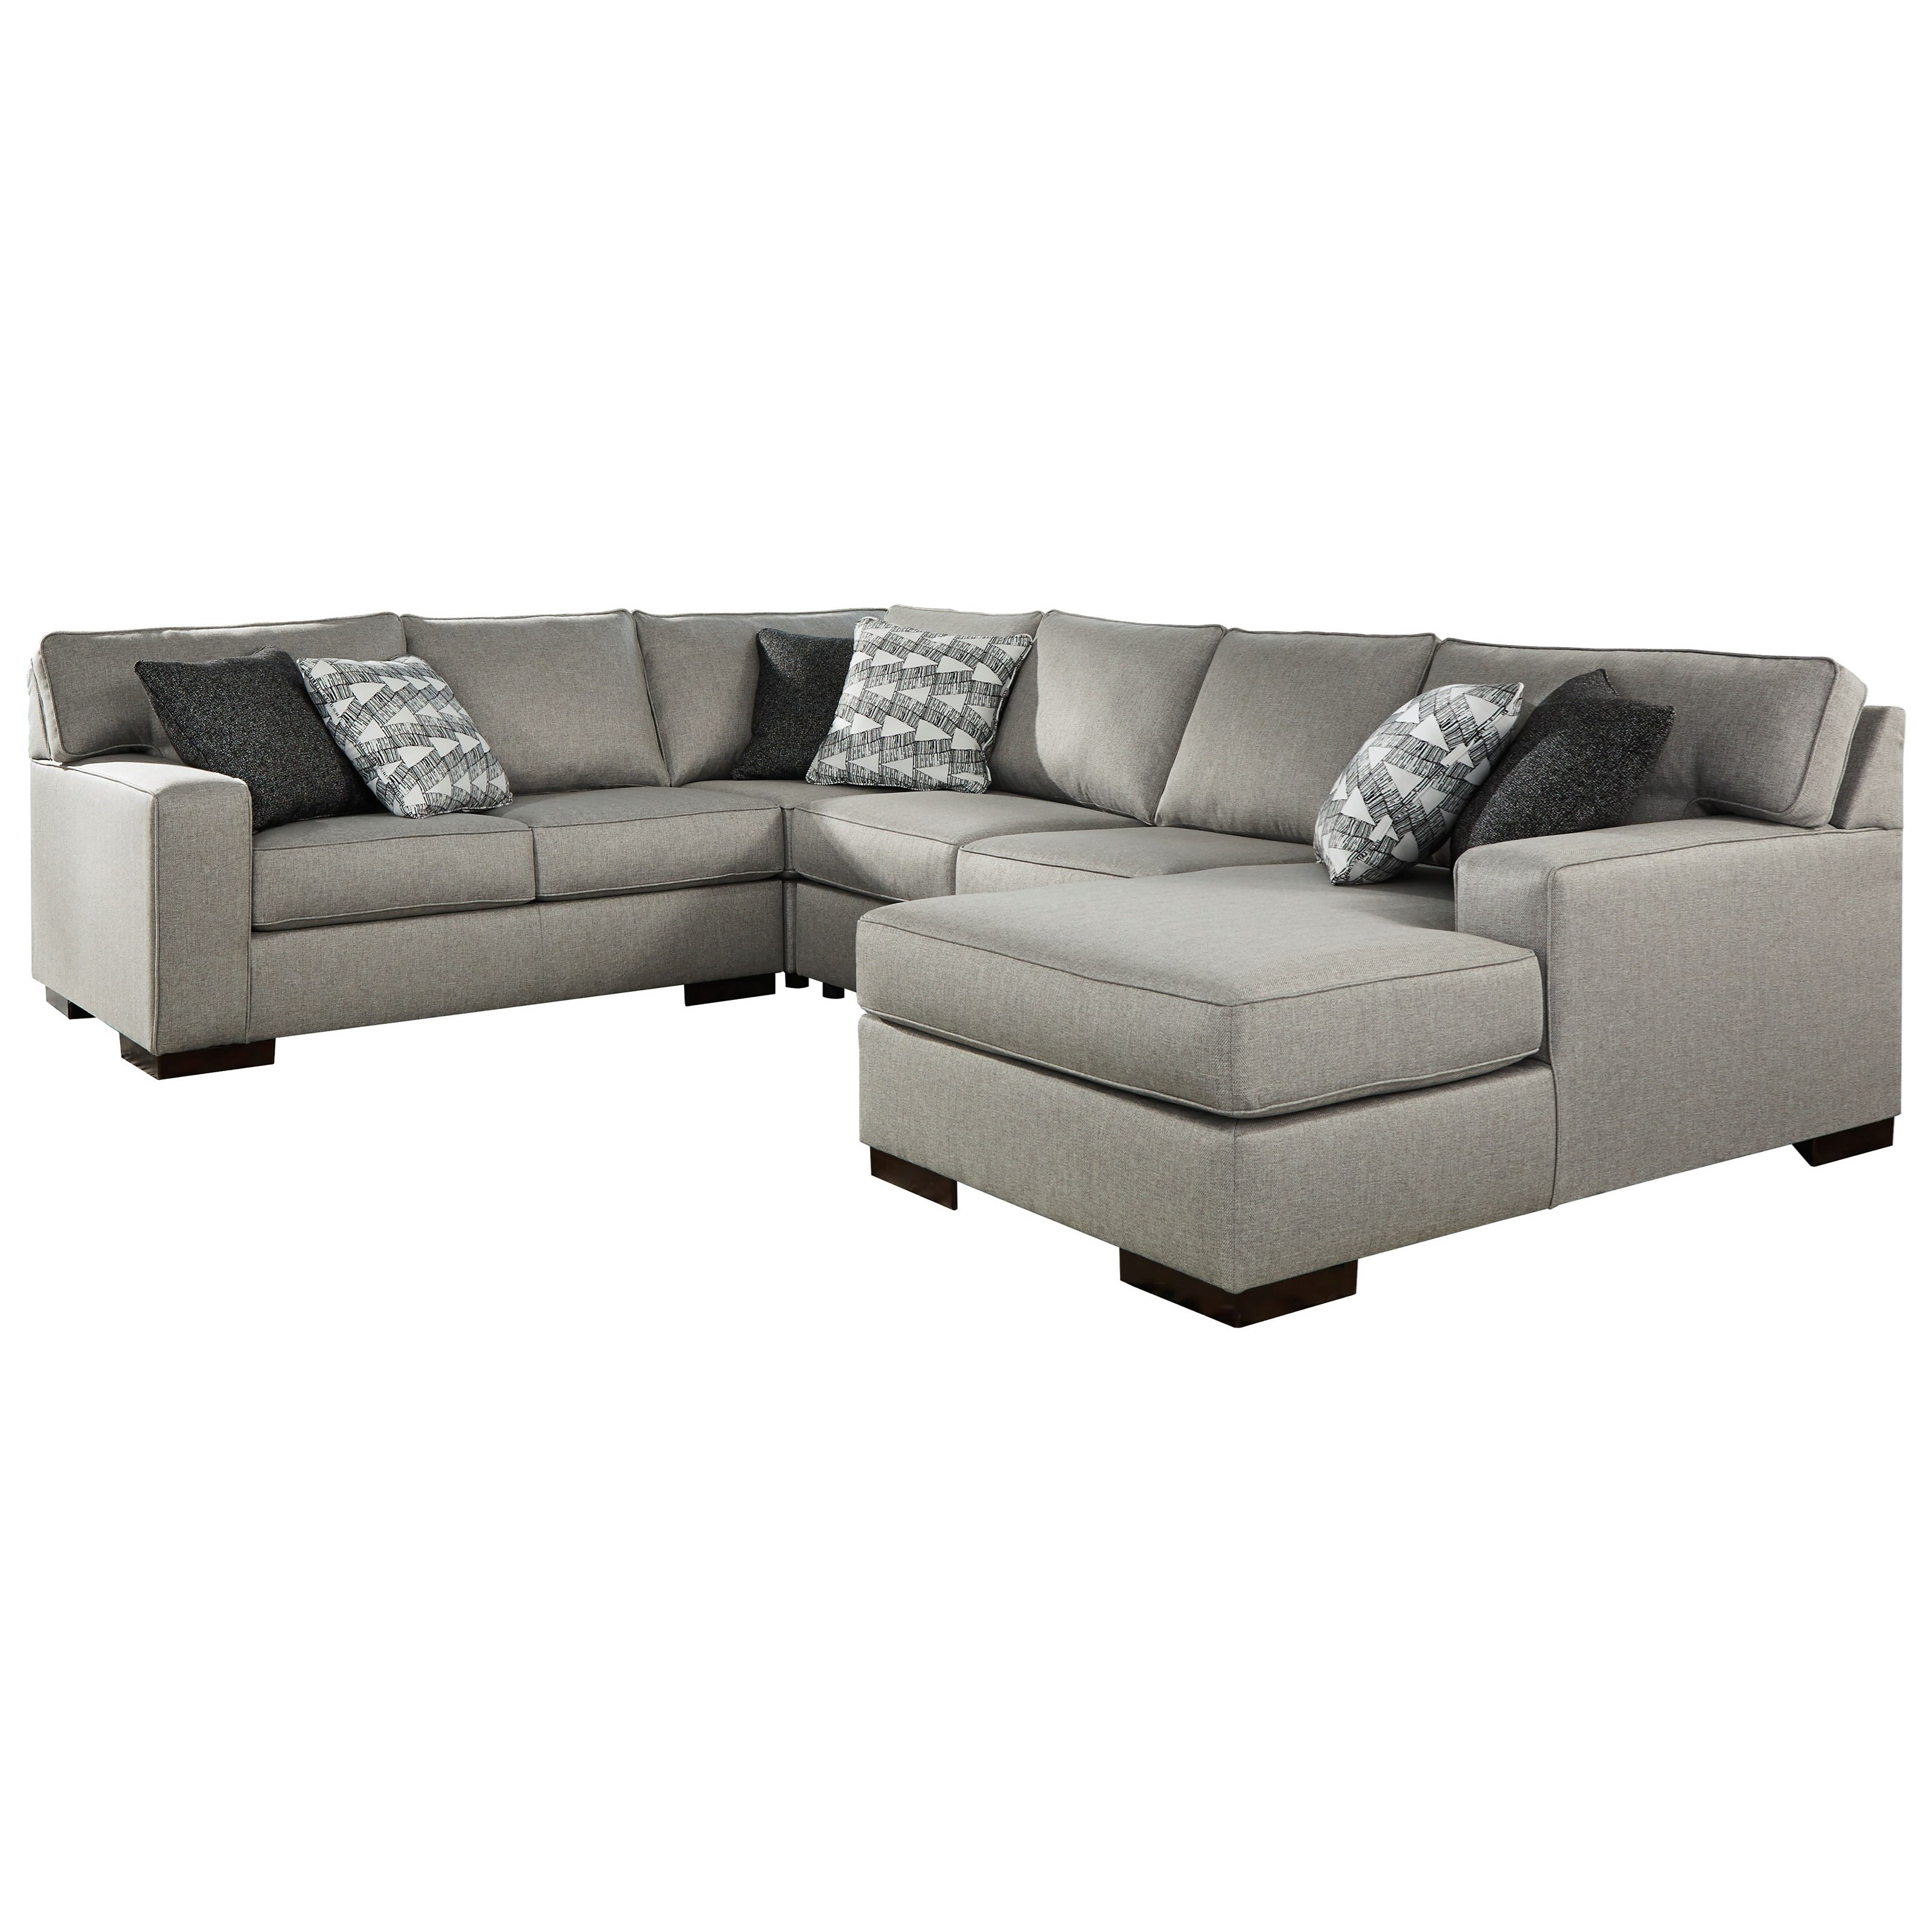 Marsing Nuvella 4-Piece Sectional with Chaise by Benchcraft at Walker's Furniture